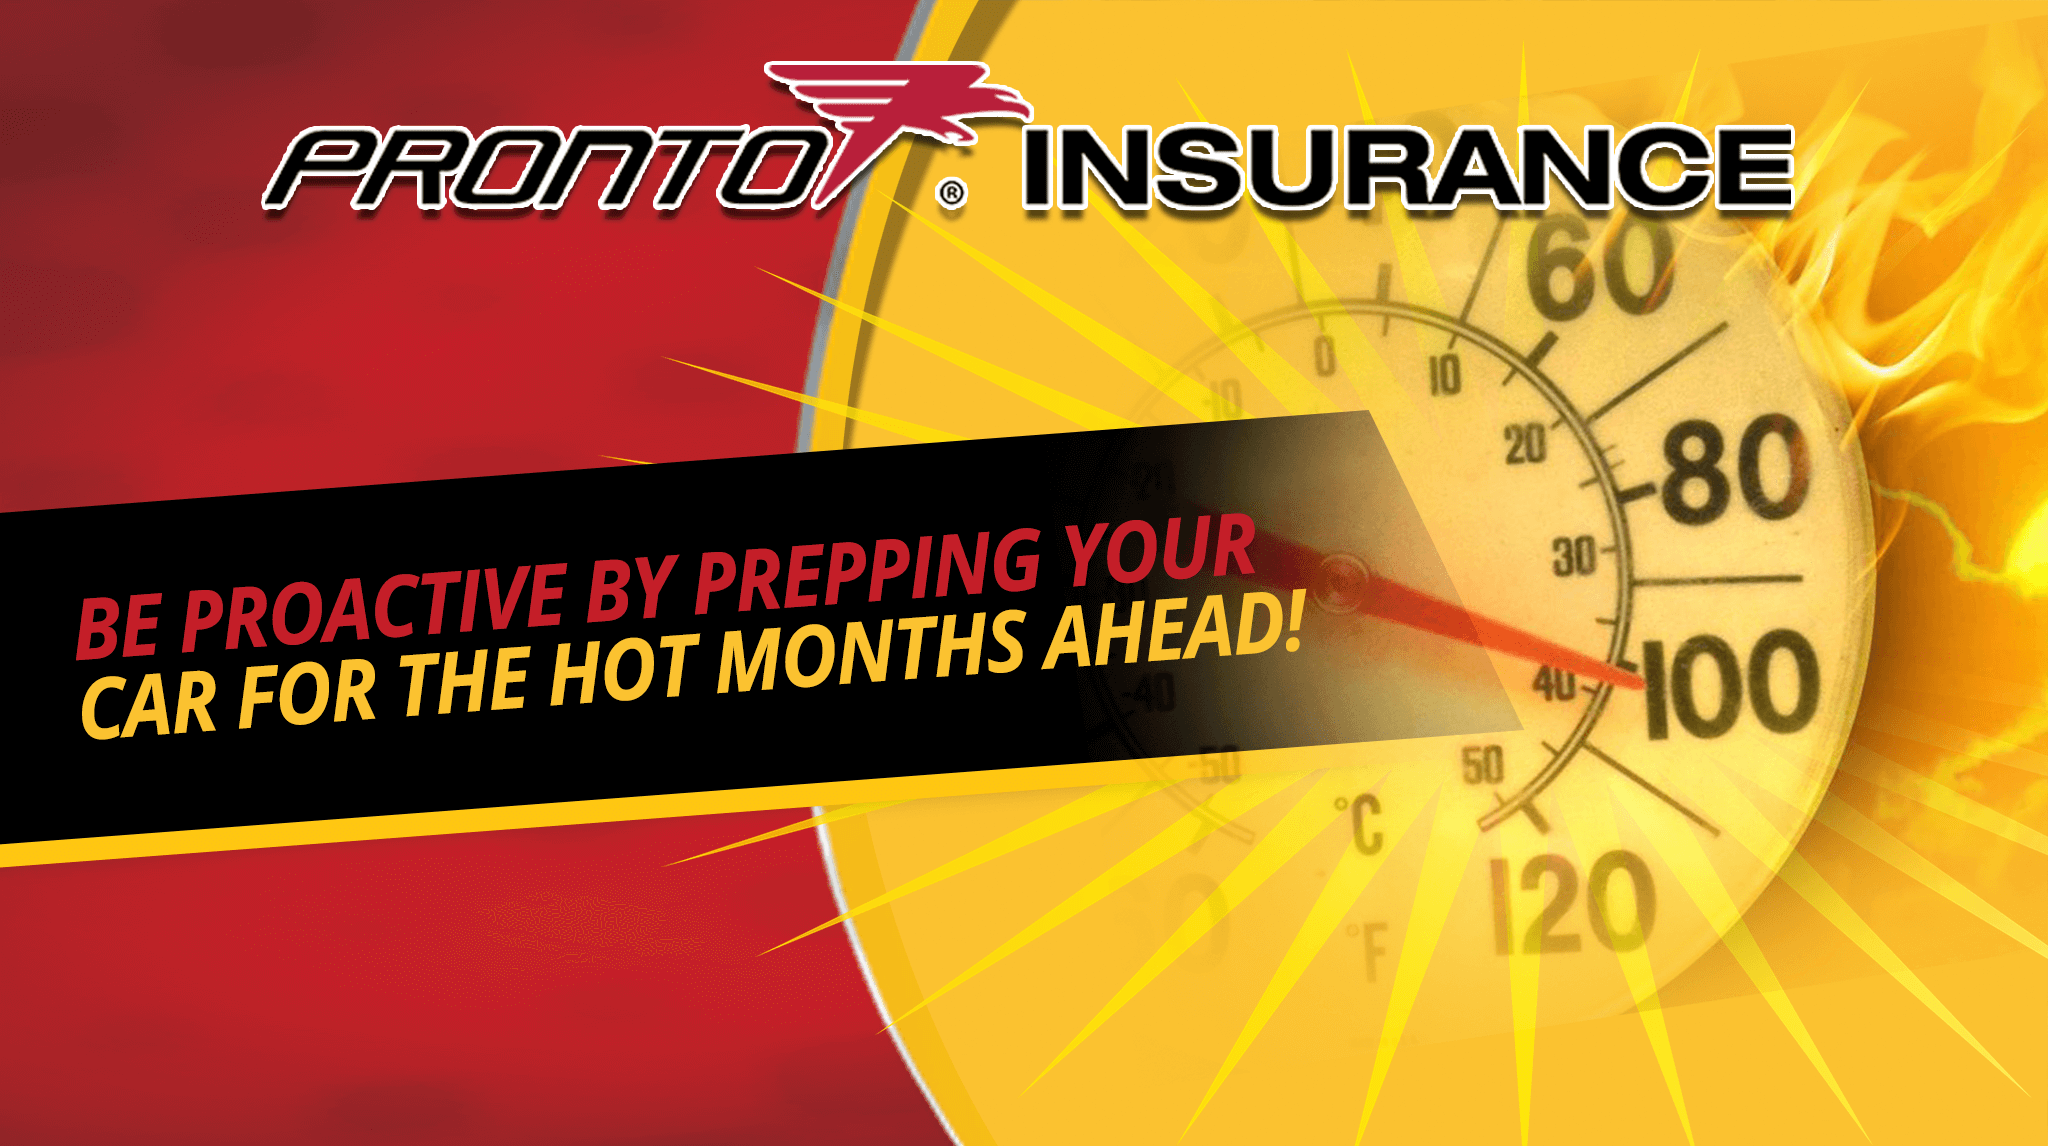 Be Proactive by Prepping Your Car for the Hot Months Ahead!